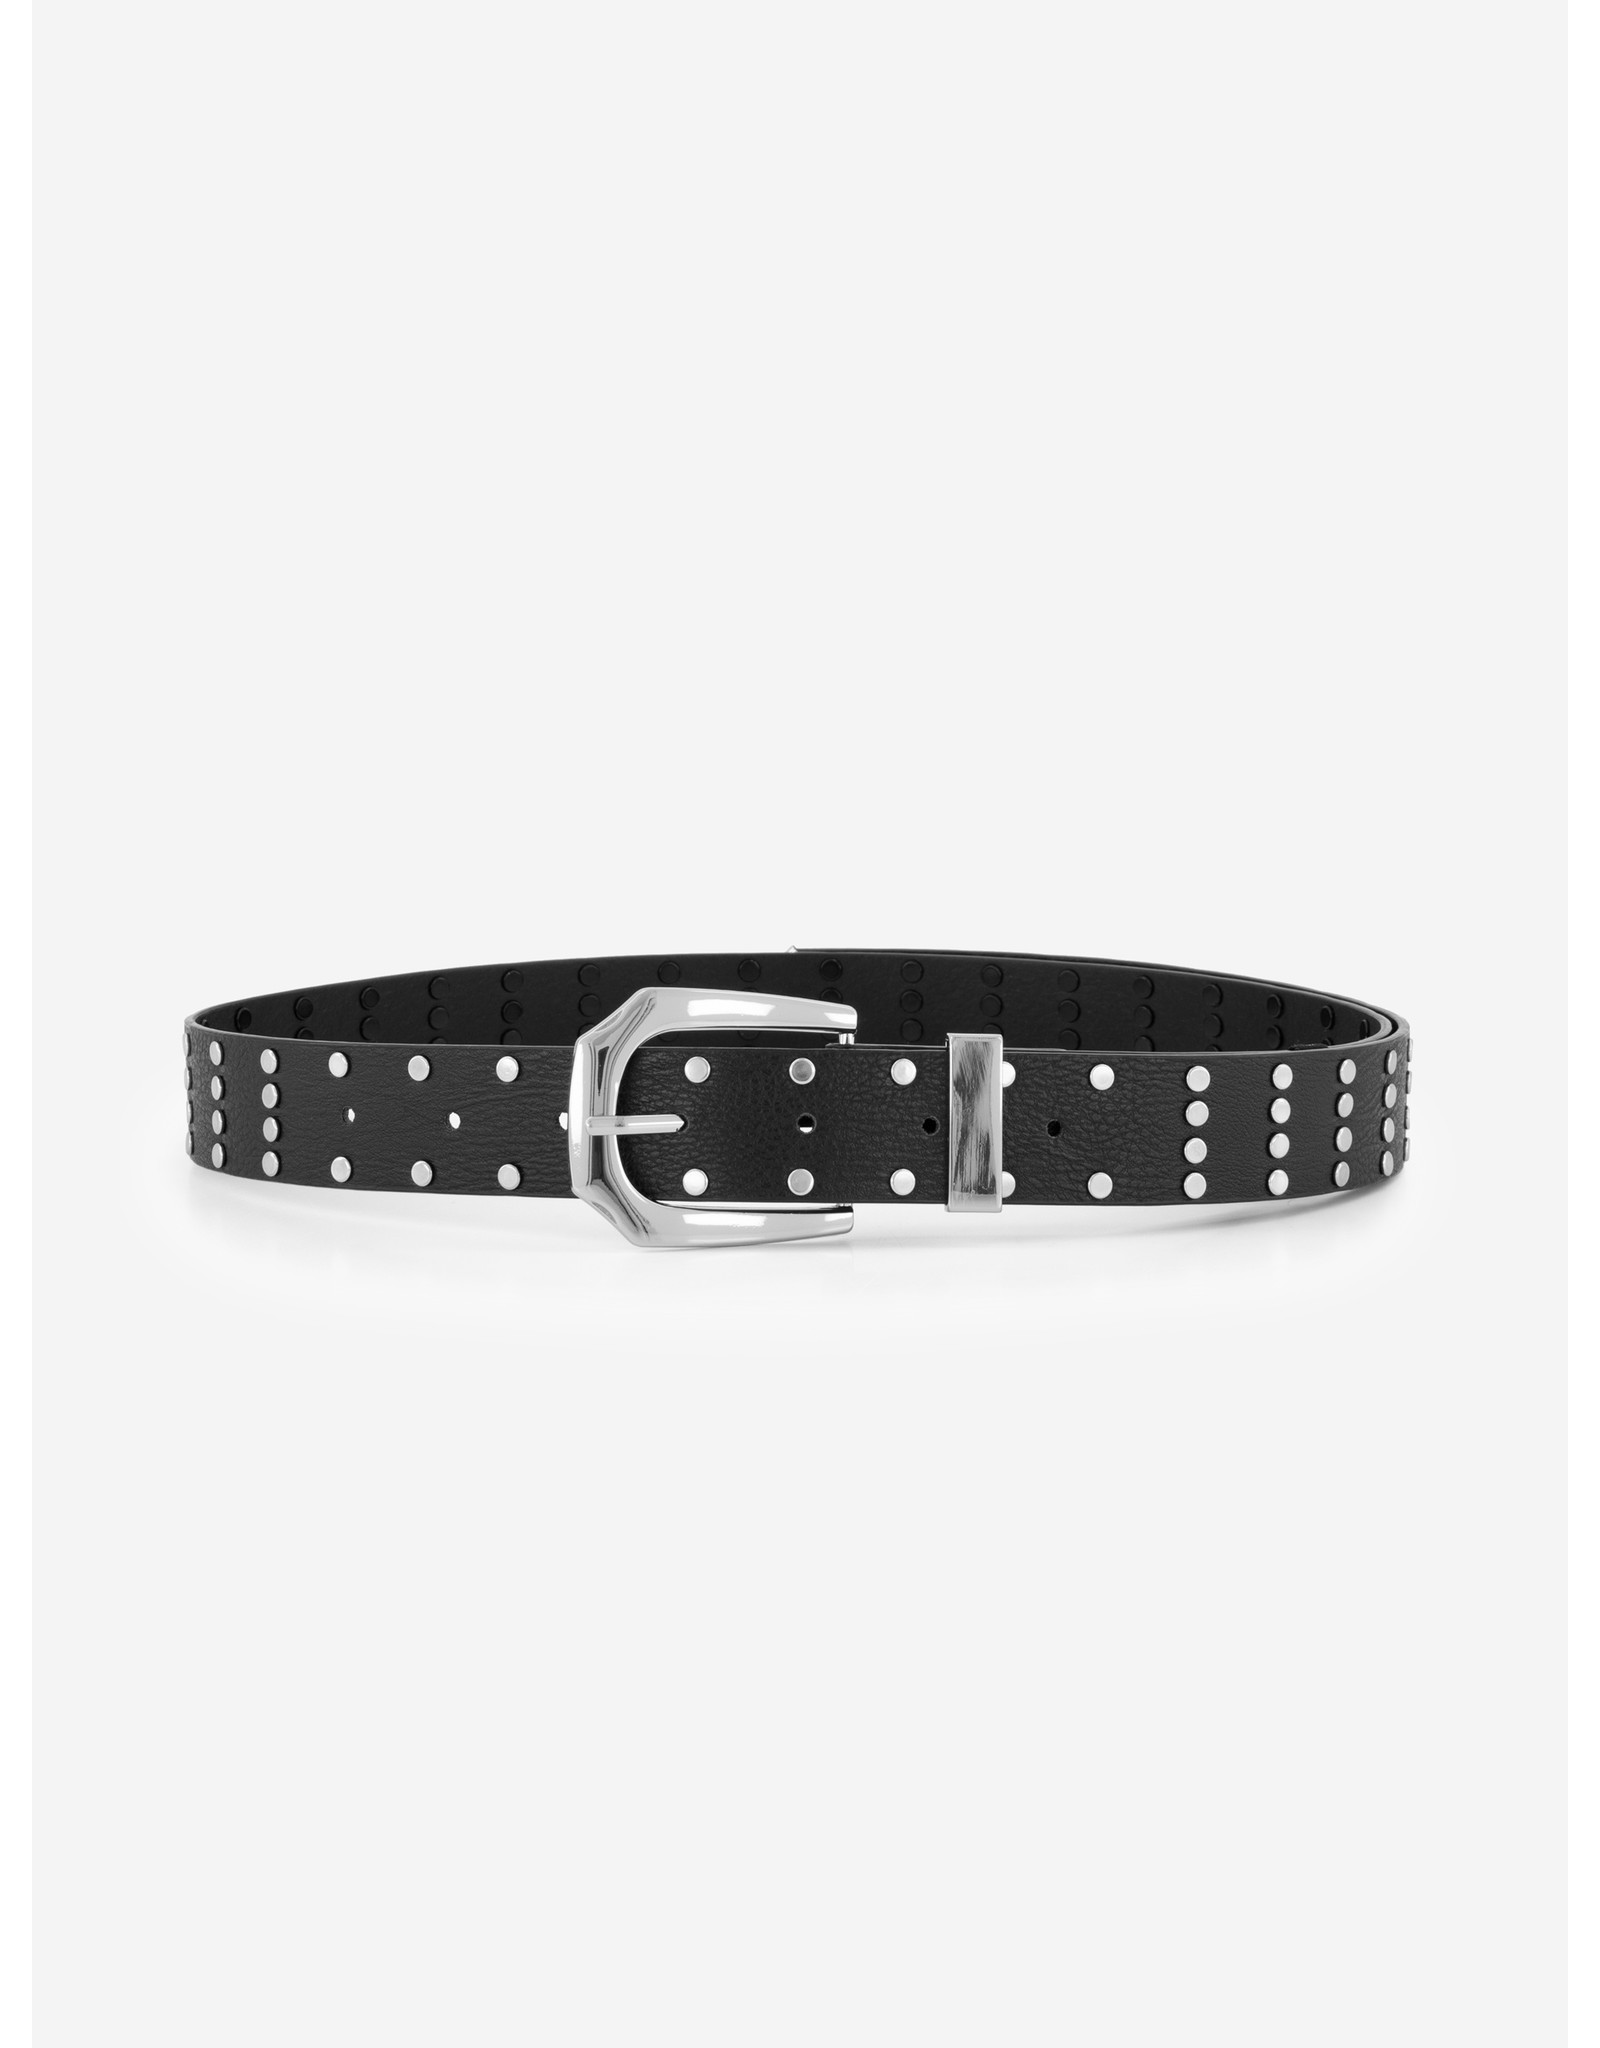 Nik&Nik NIK&NIK Studded Long Belt Black